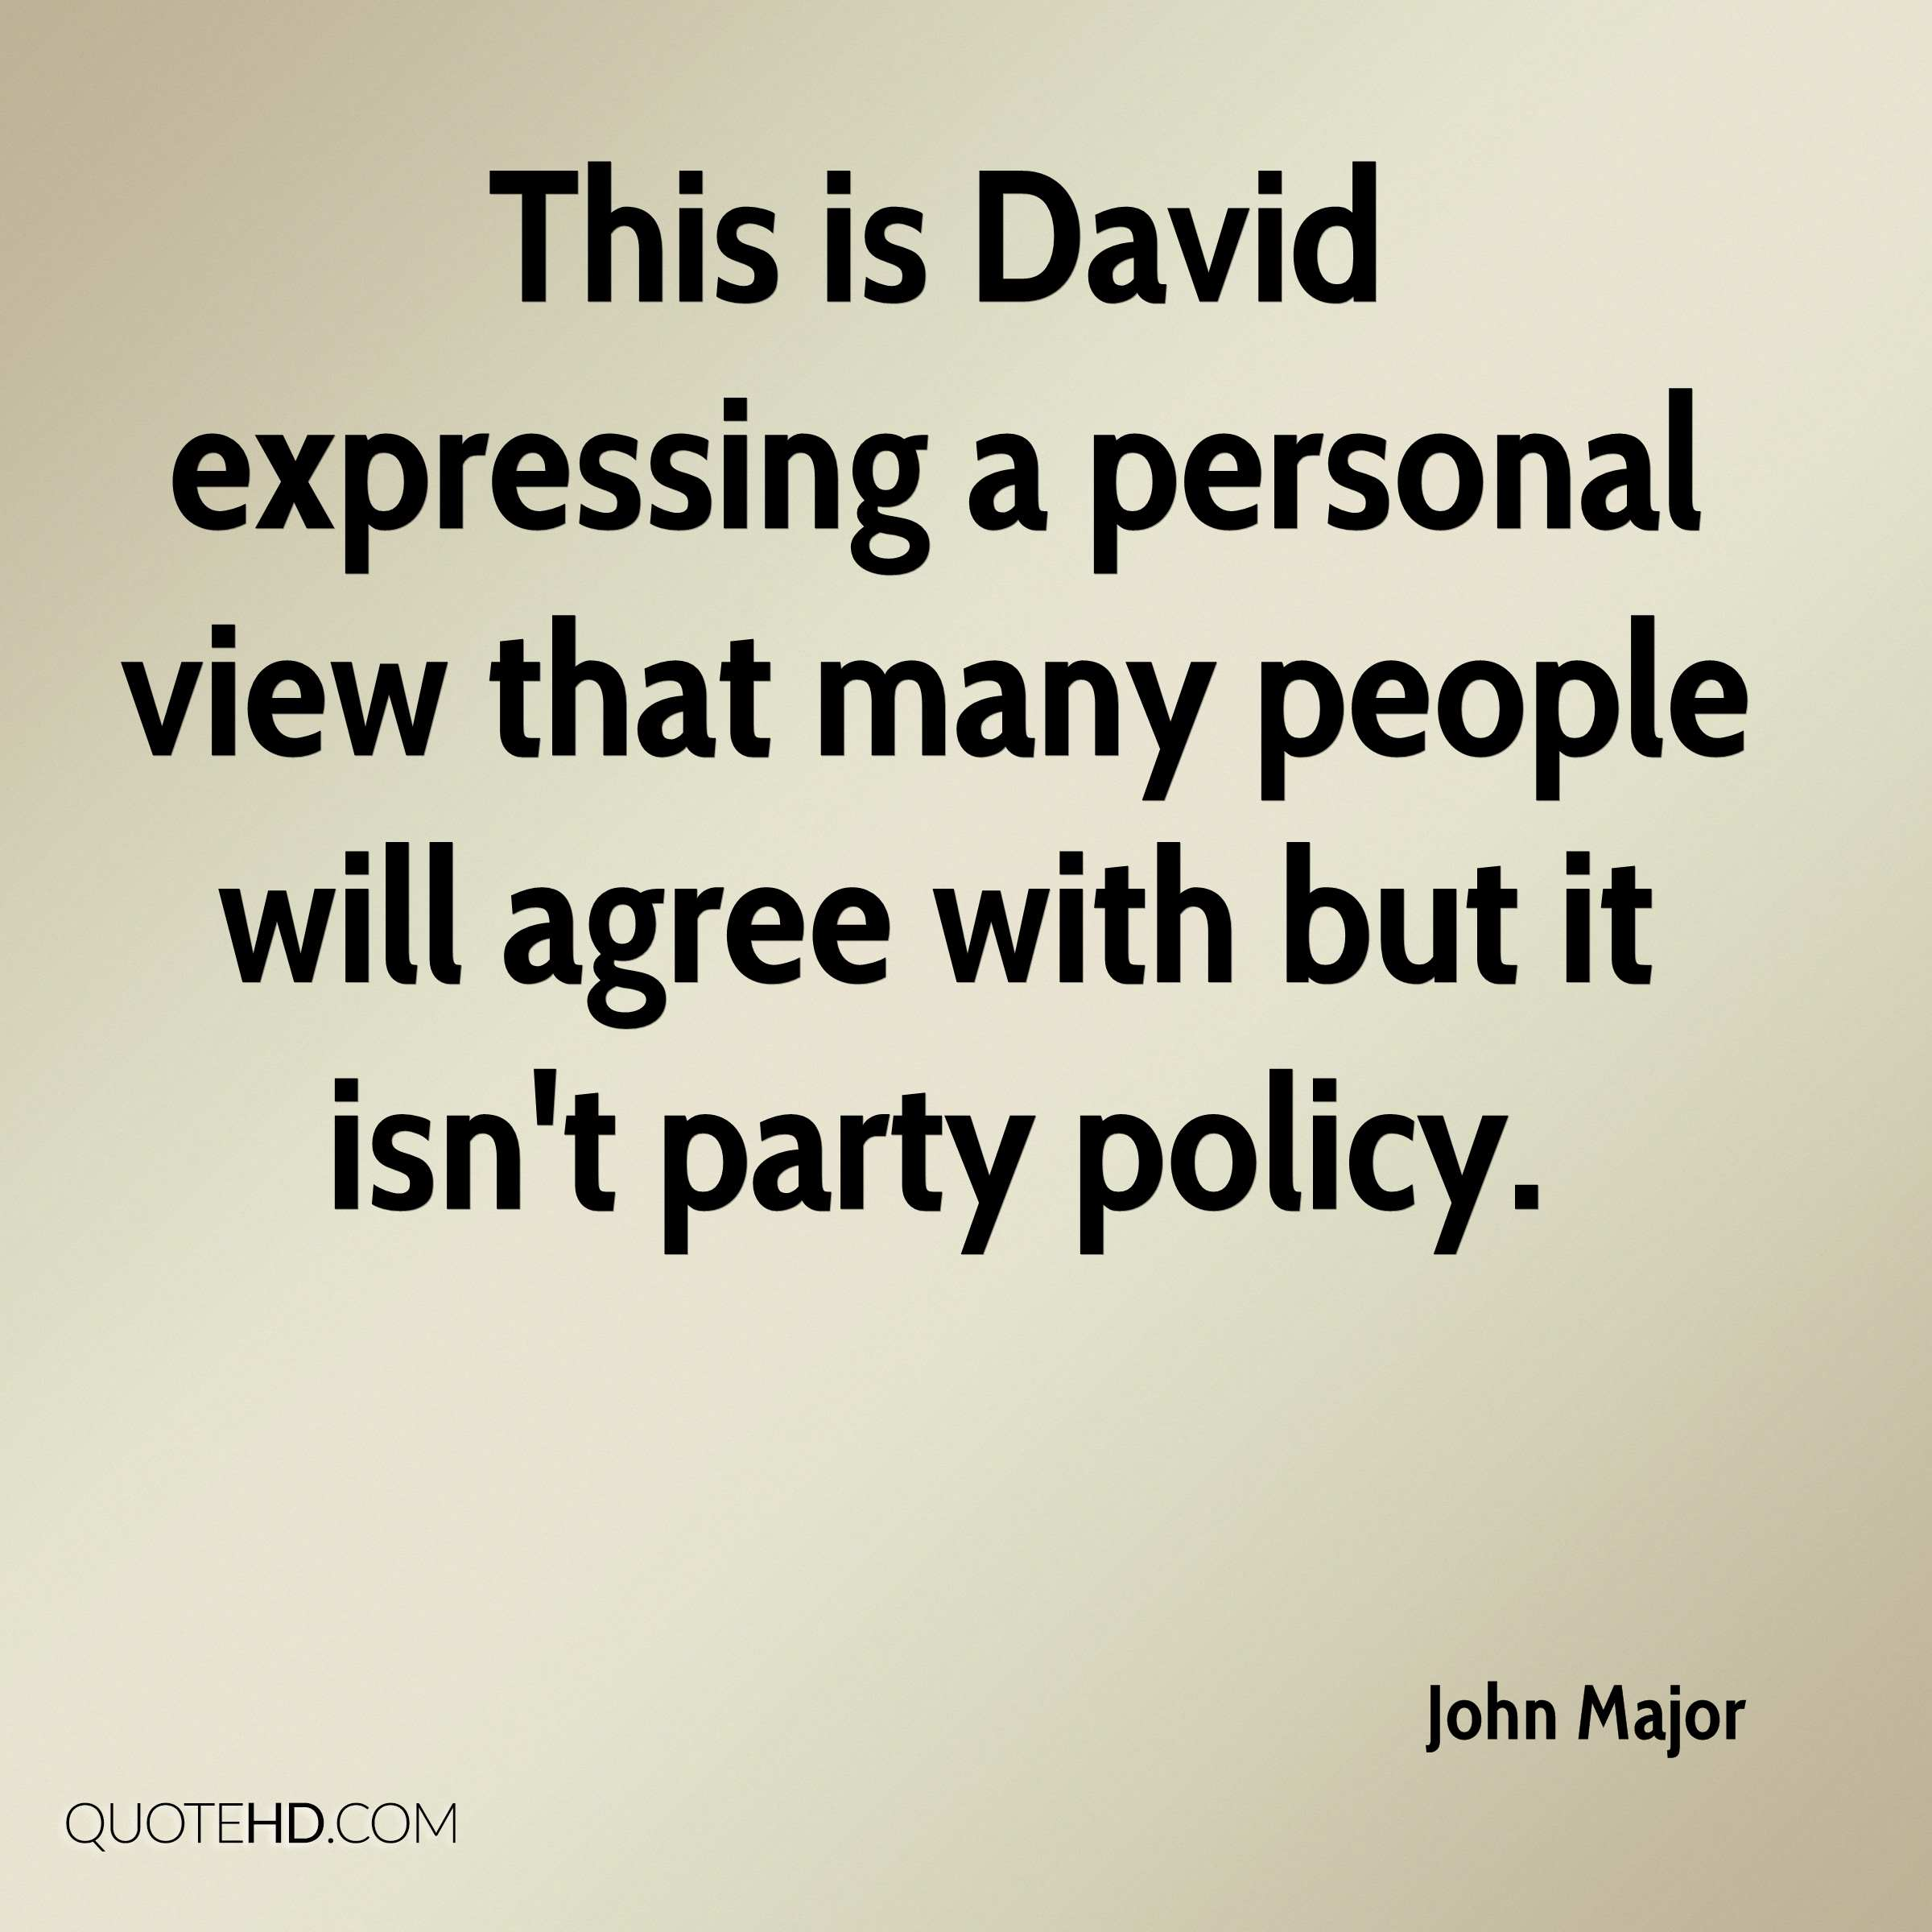 This is David expressing a personal view that many people will agree with but it isn't party policy.